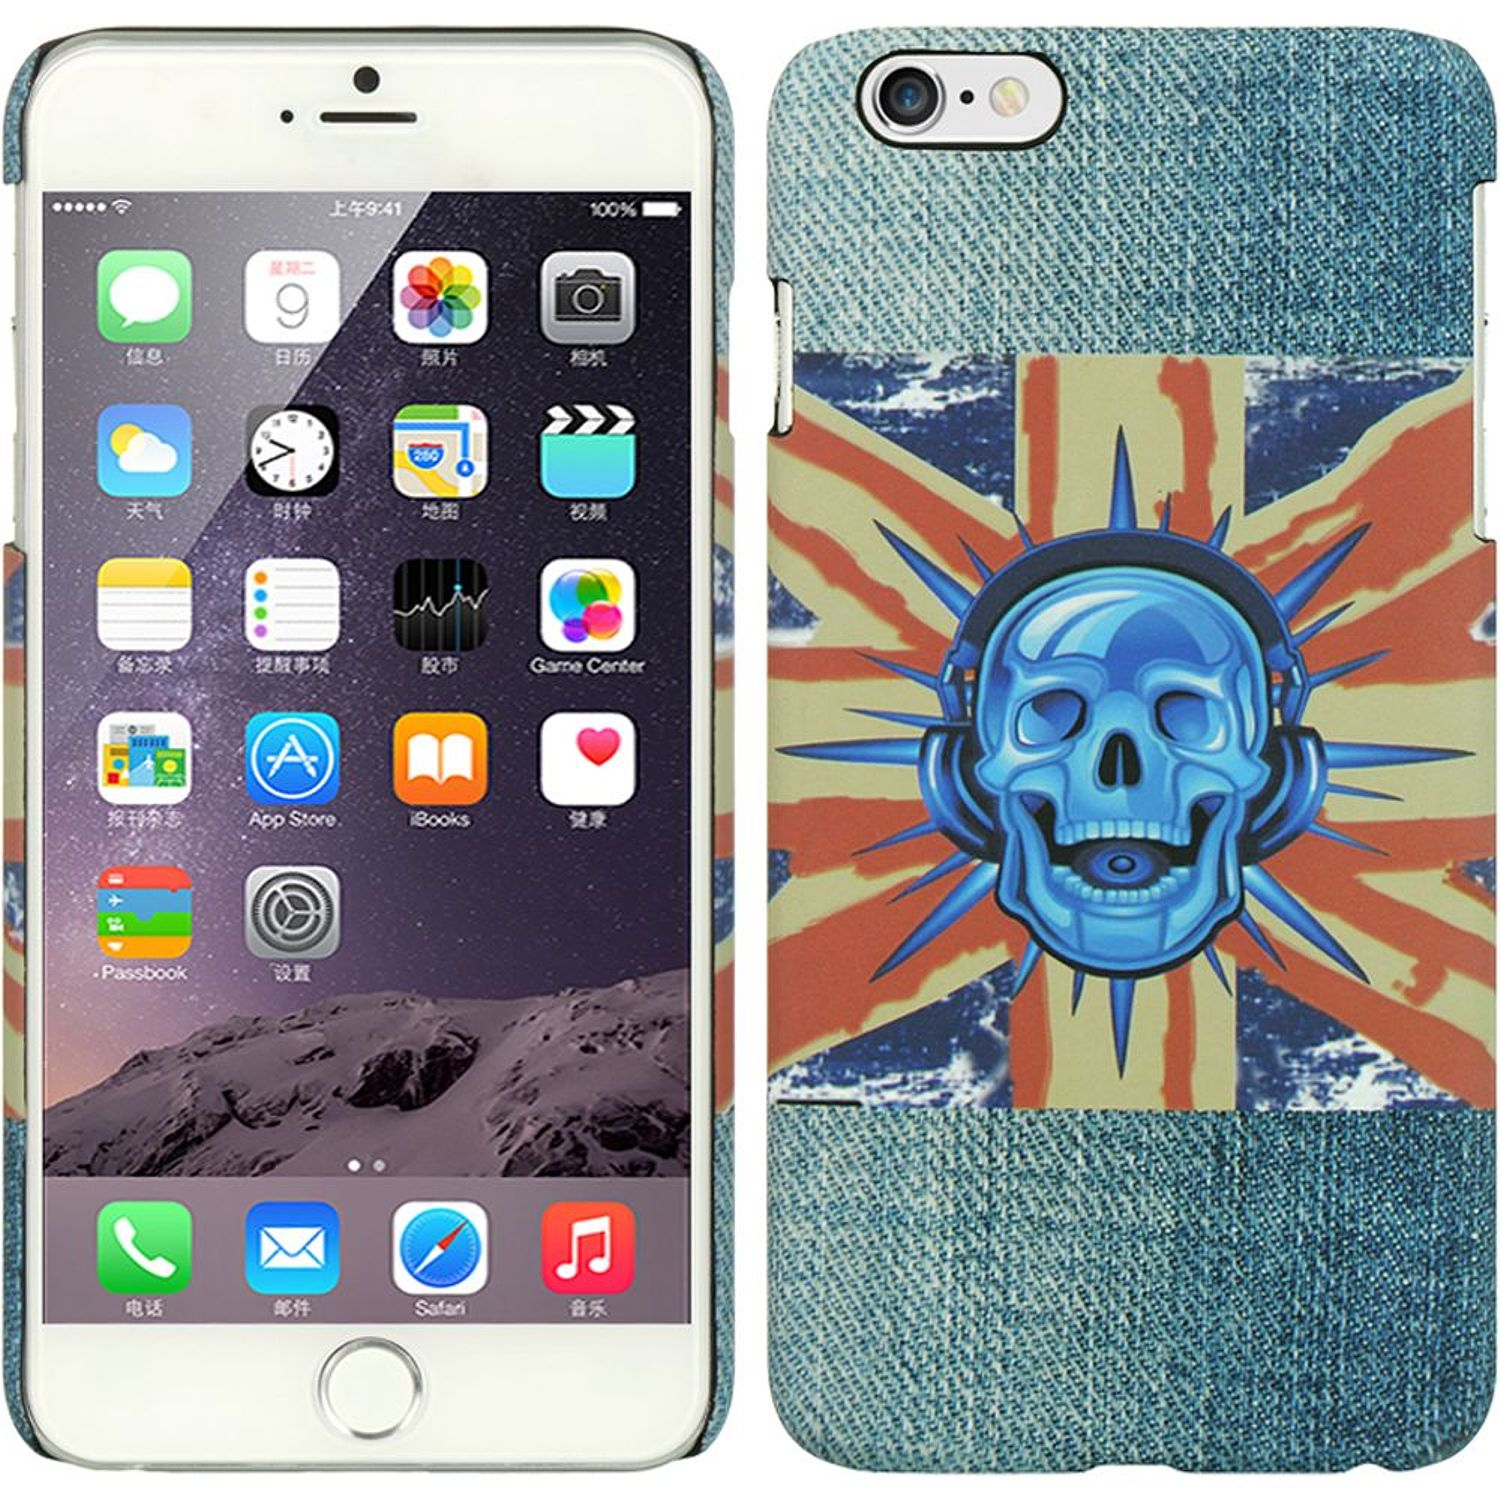 Apple iPhone 6 Plus/6s Plus Case, by DreamWireless Jeans Rubberized Hard Snap-in Case Cover For Apple iPhone 6 Plus/6s Plus, Blue